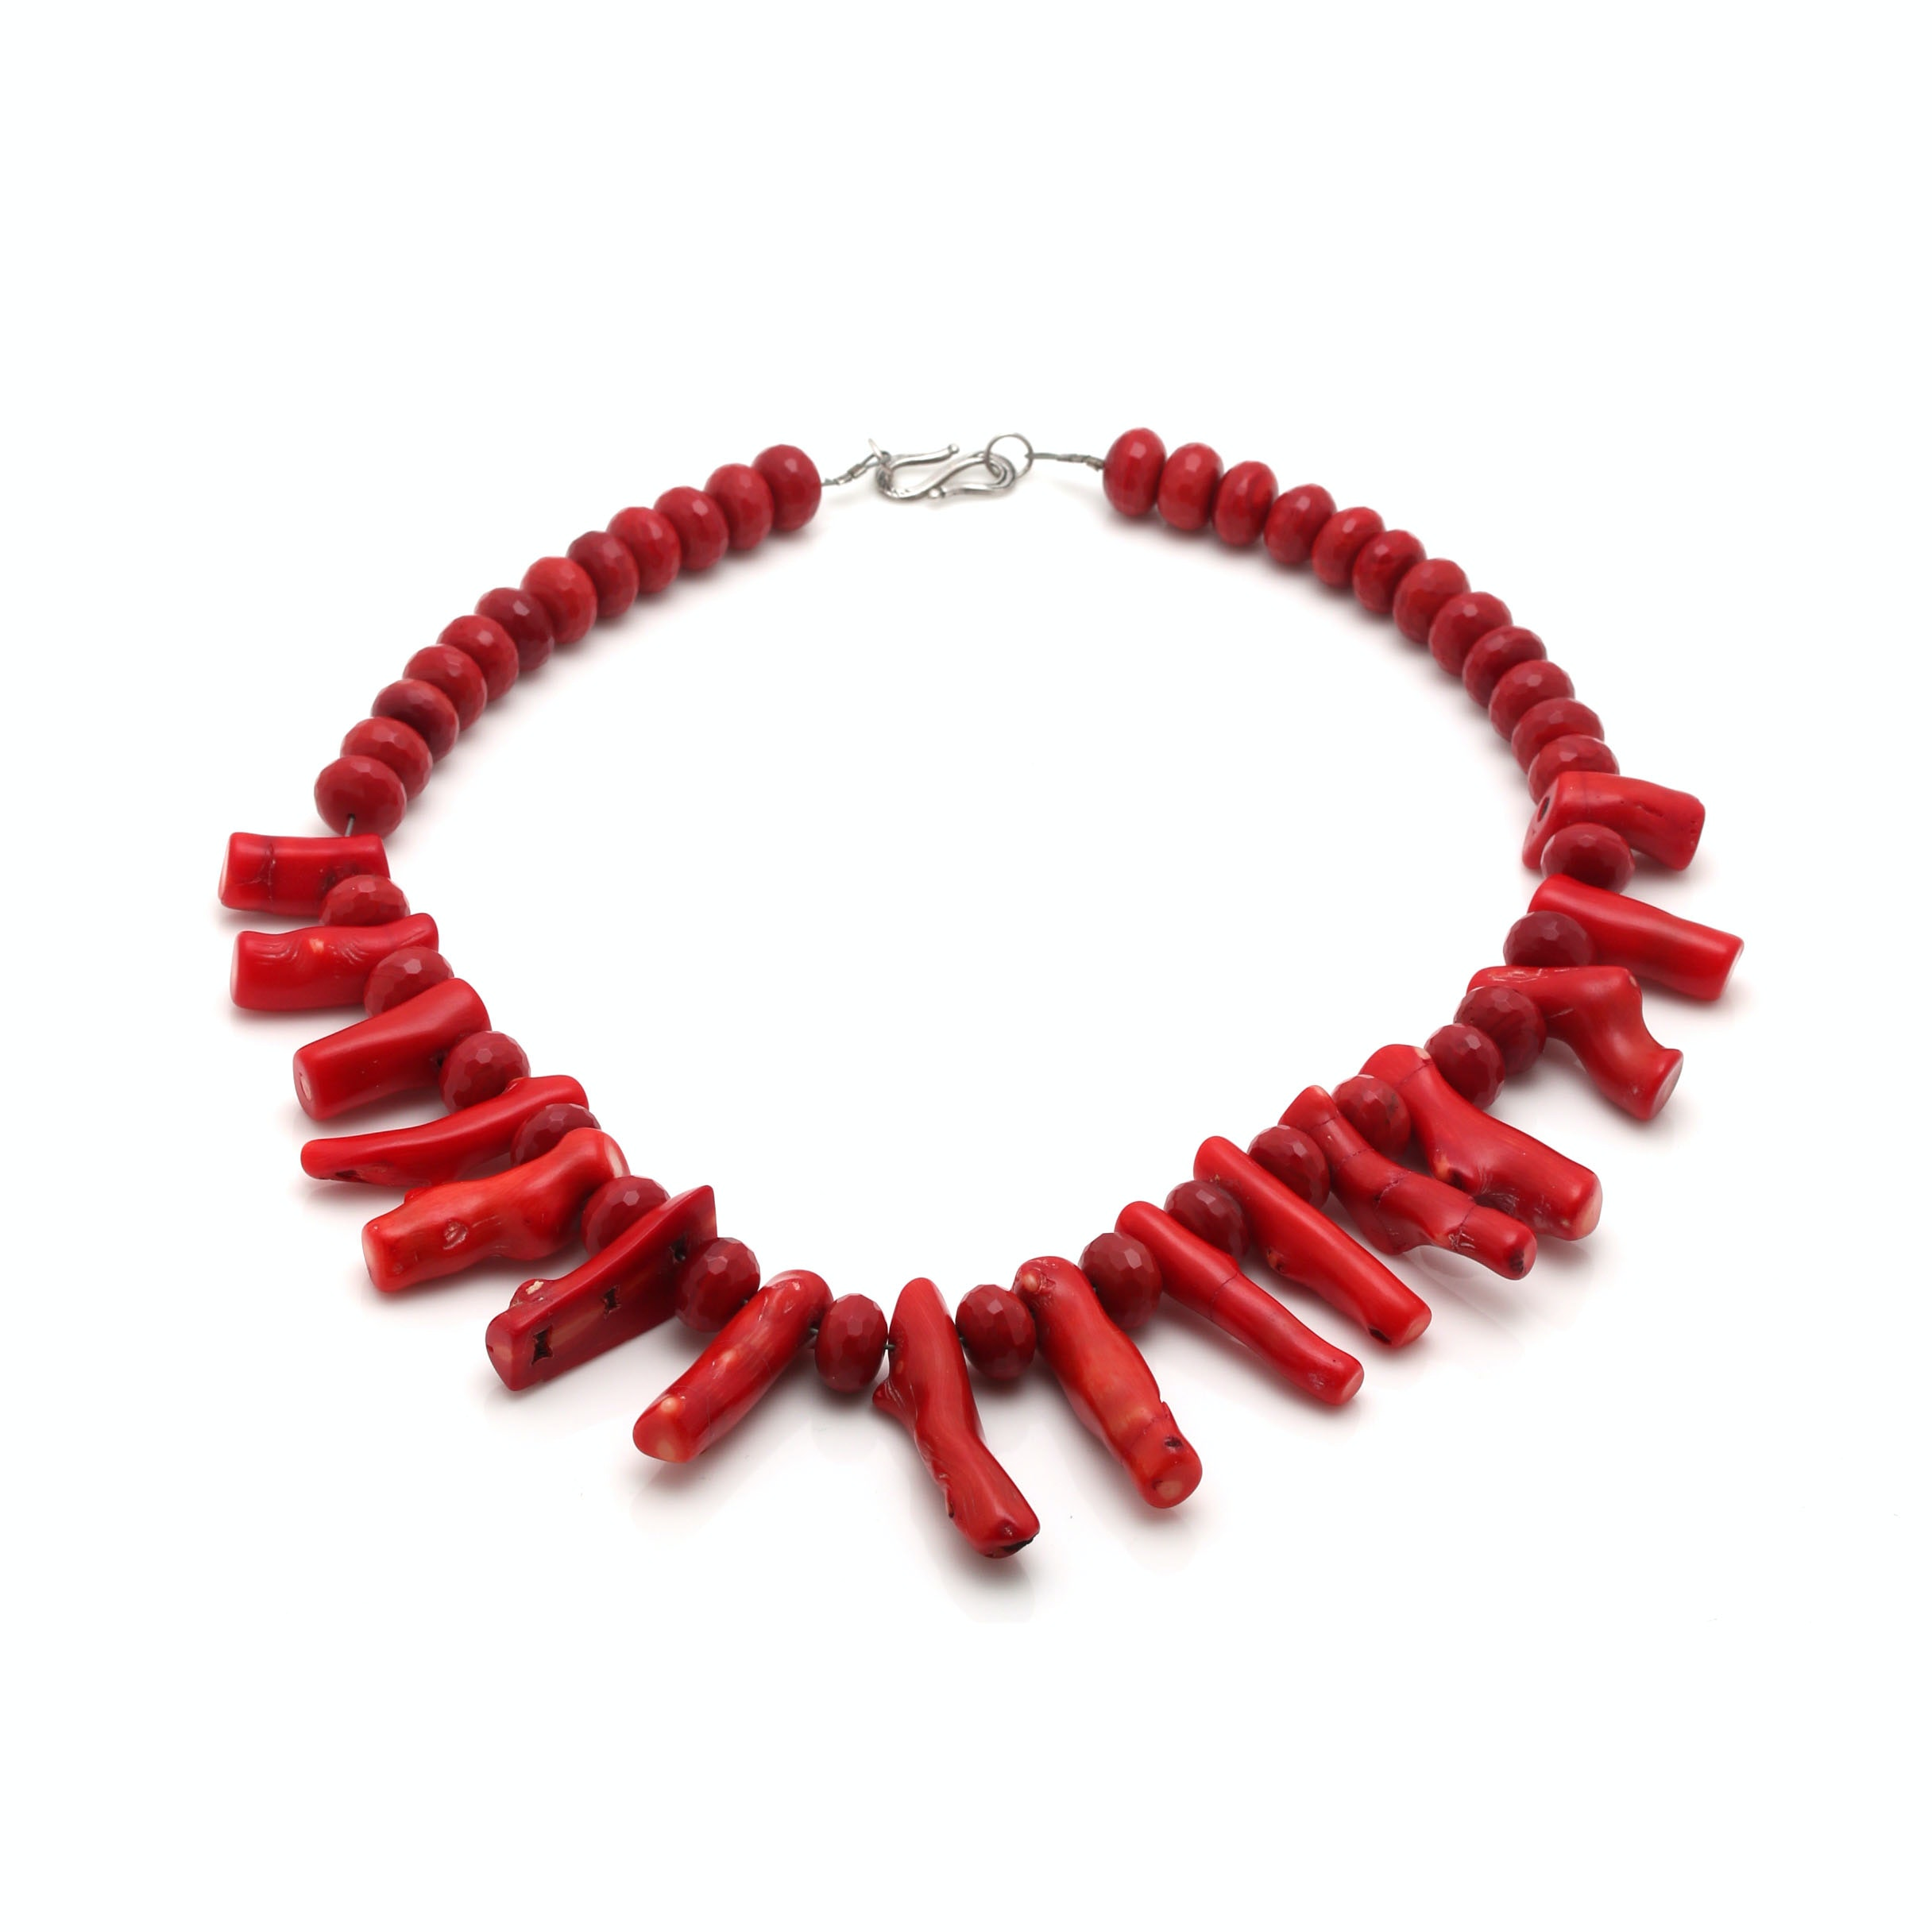 Coral and Glass Beaded Necklace With Sterling Silver Clasp